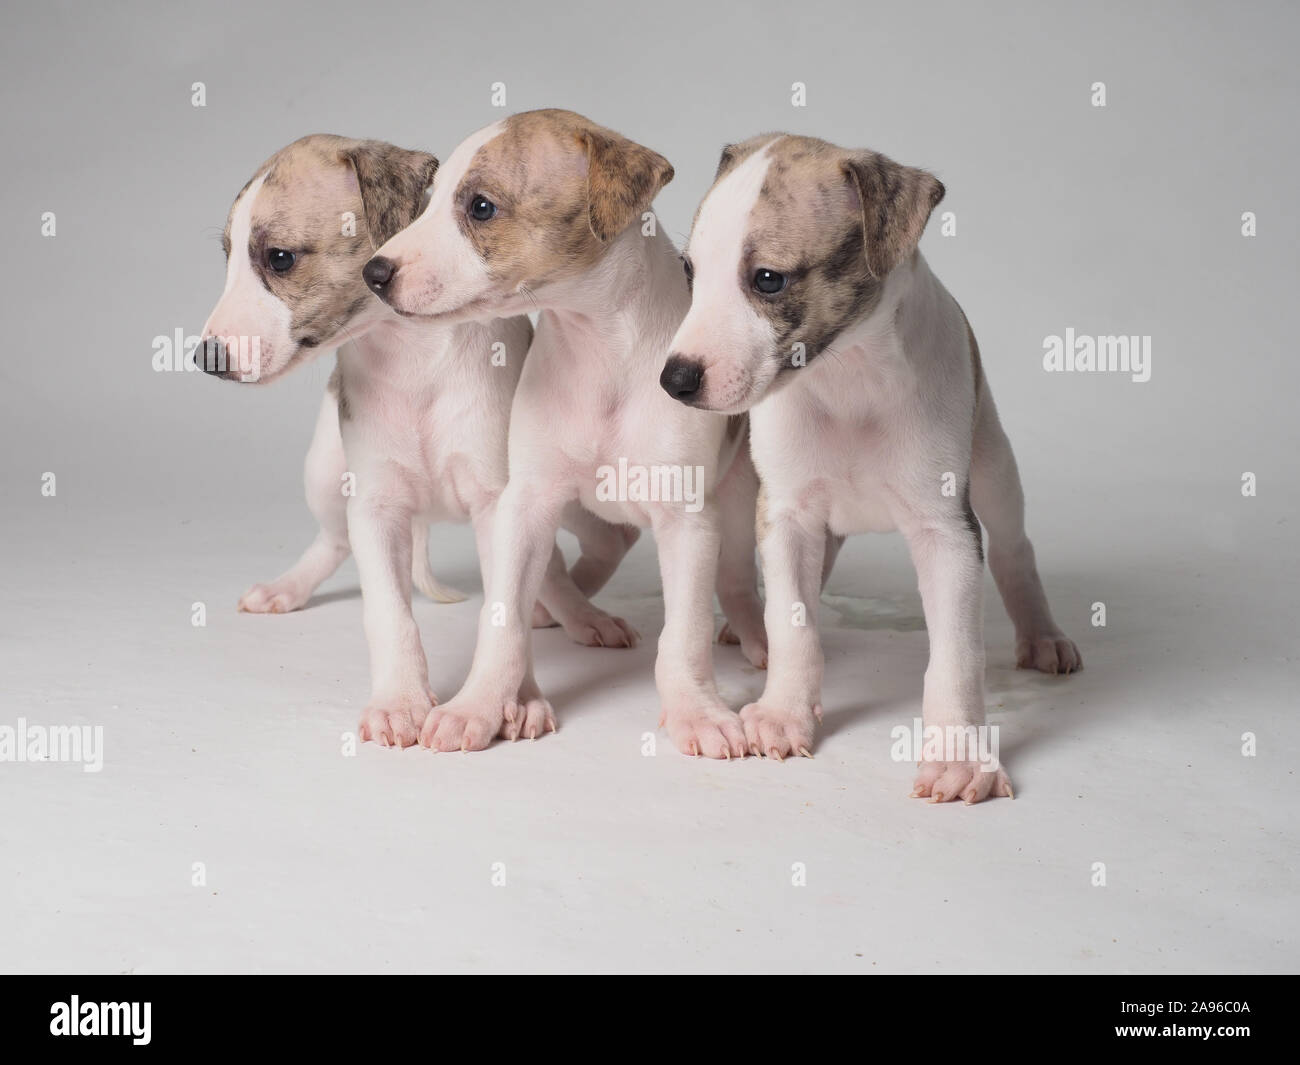 Three puppies of Whippet dog purebred  with 36 days old tabby and white Stock Photo